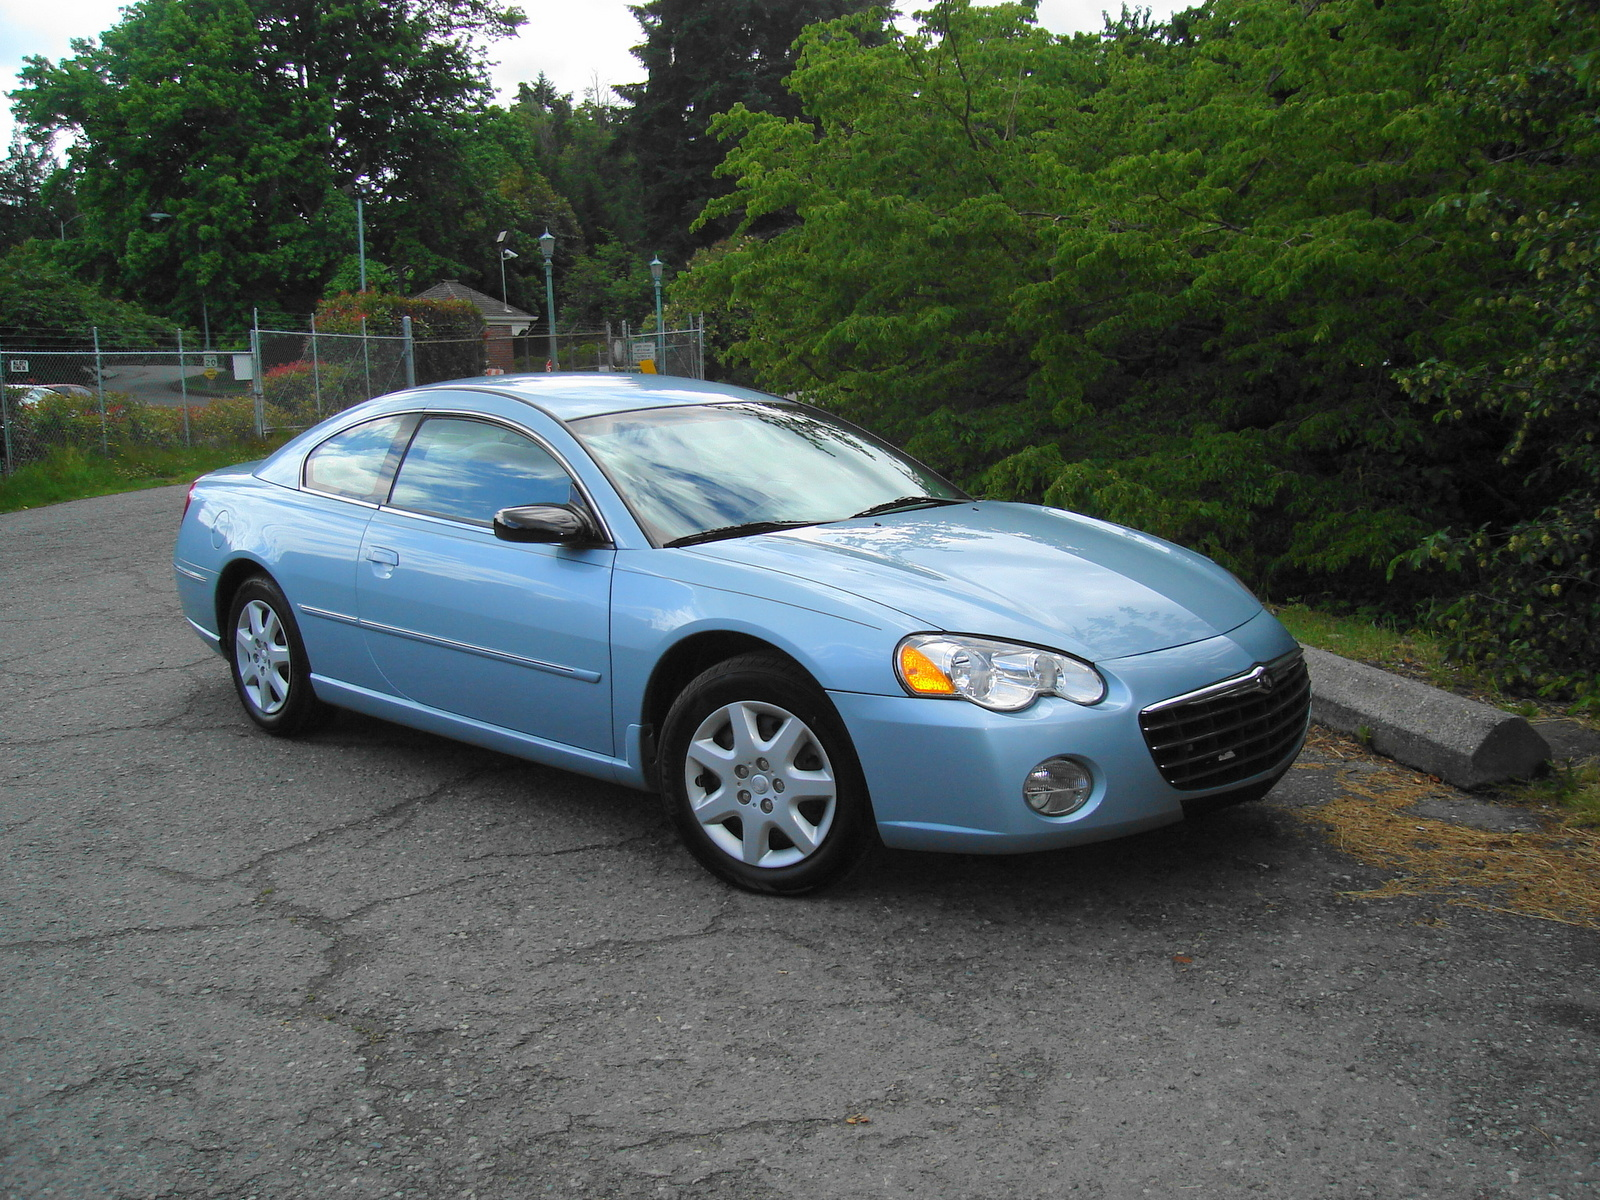 2003 Chrysler Sebring #3